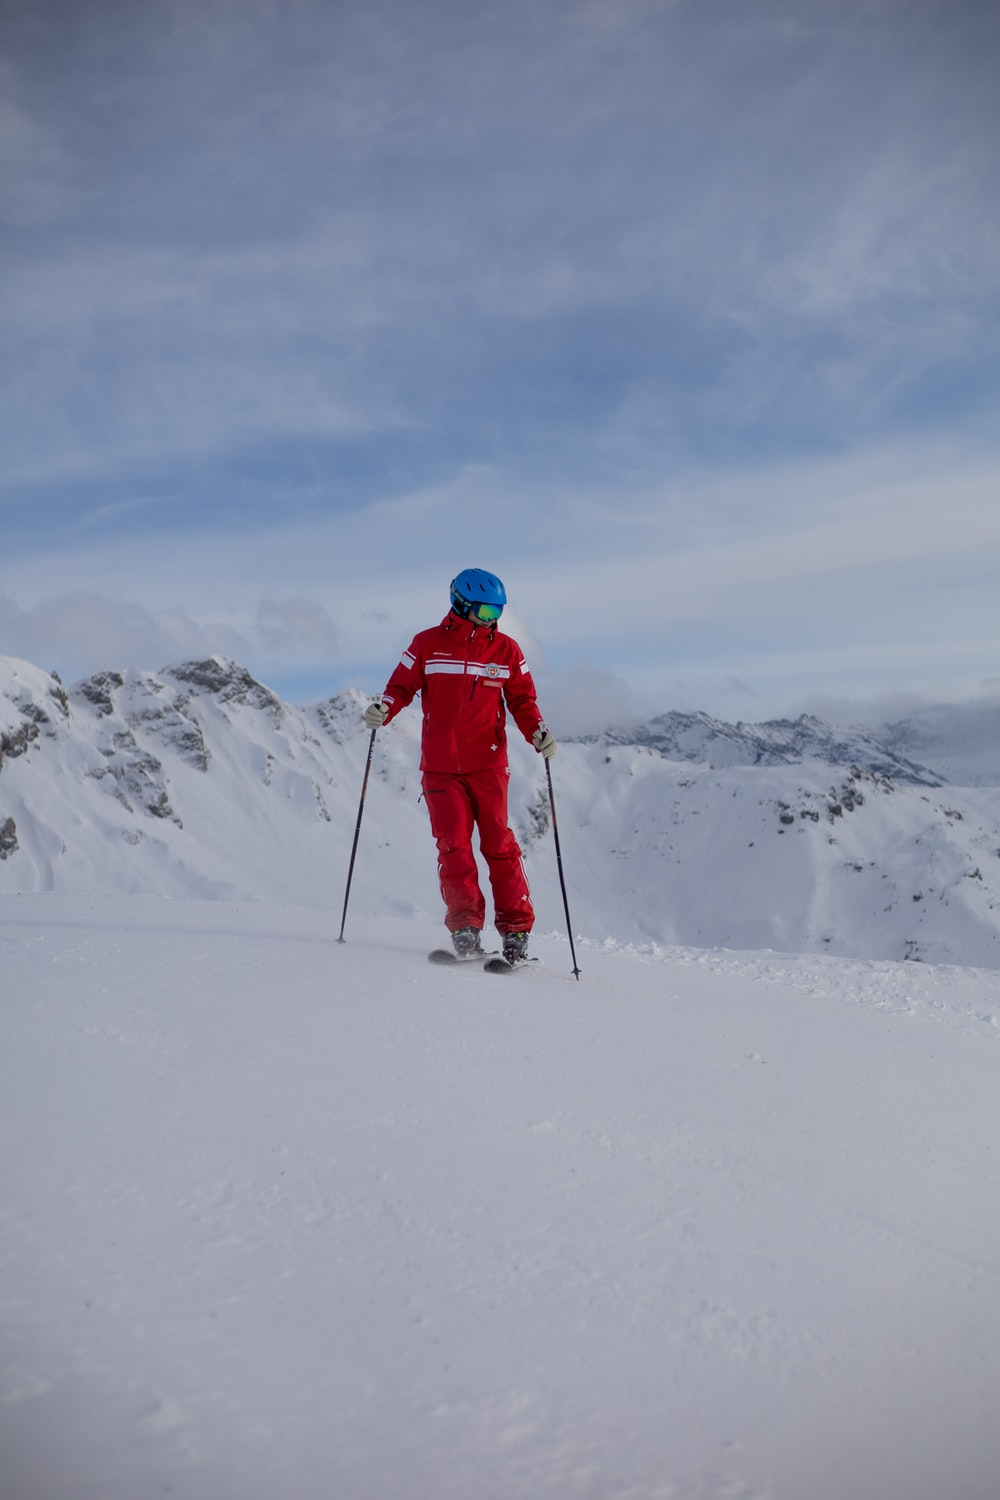 person in red jacket and black pants riding ski blades on snow covered mountain during daytime